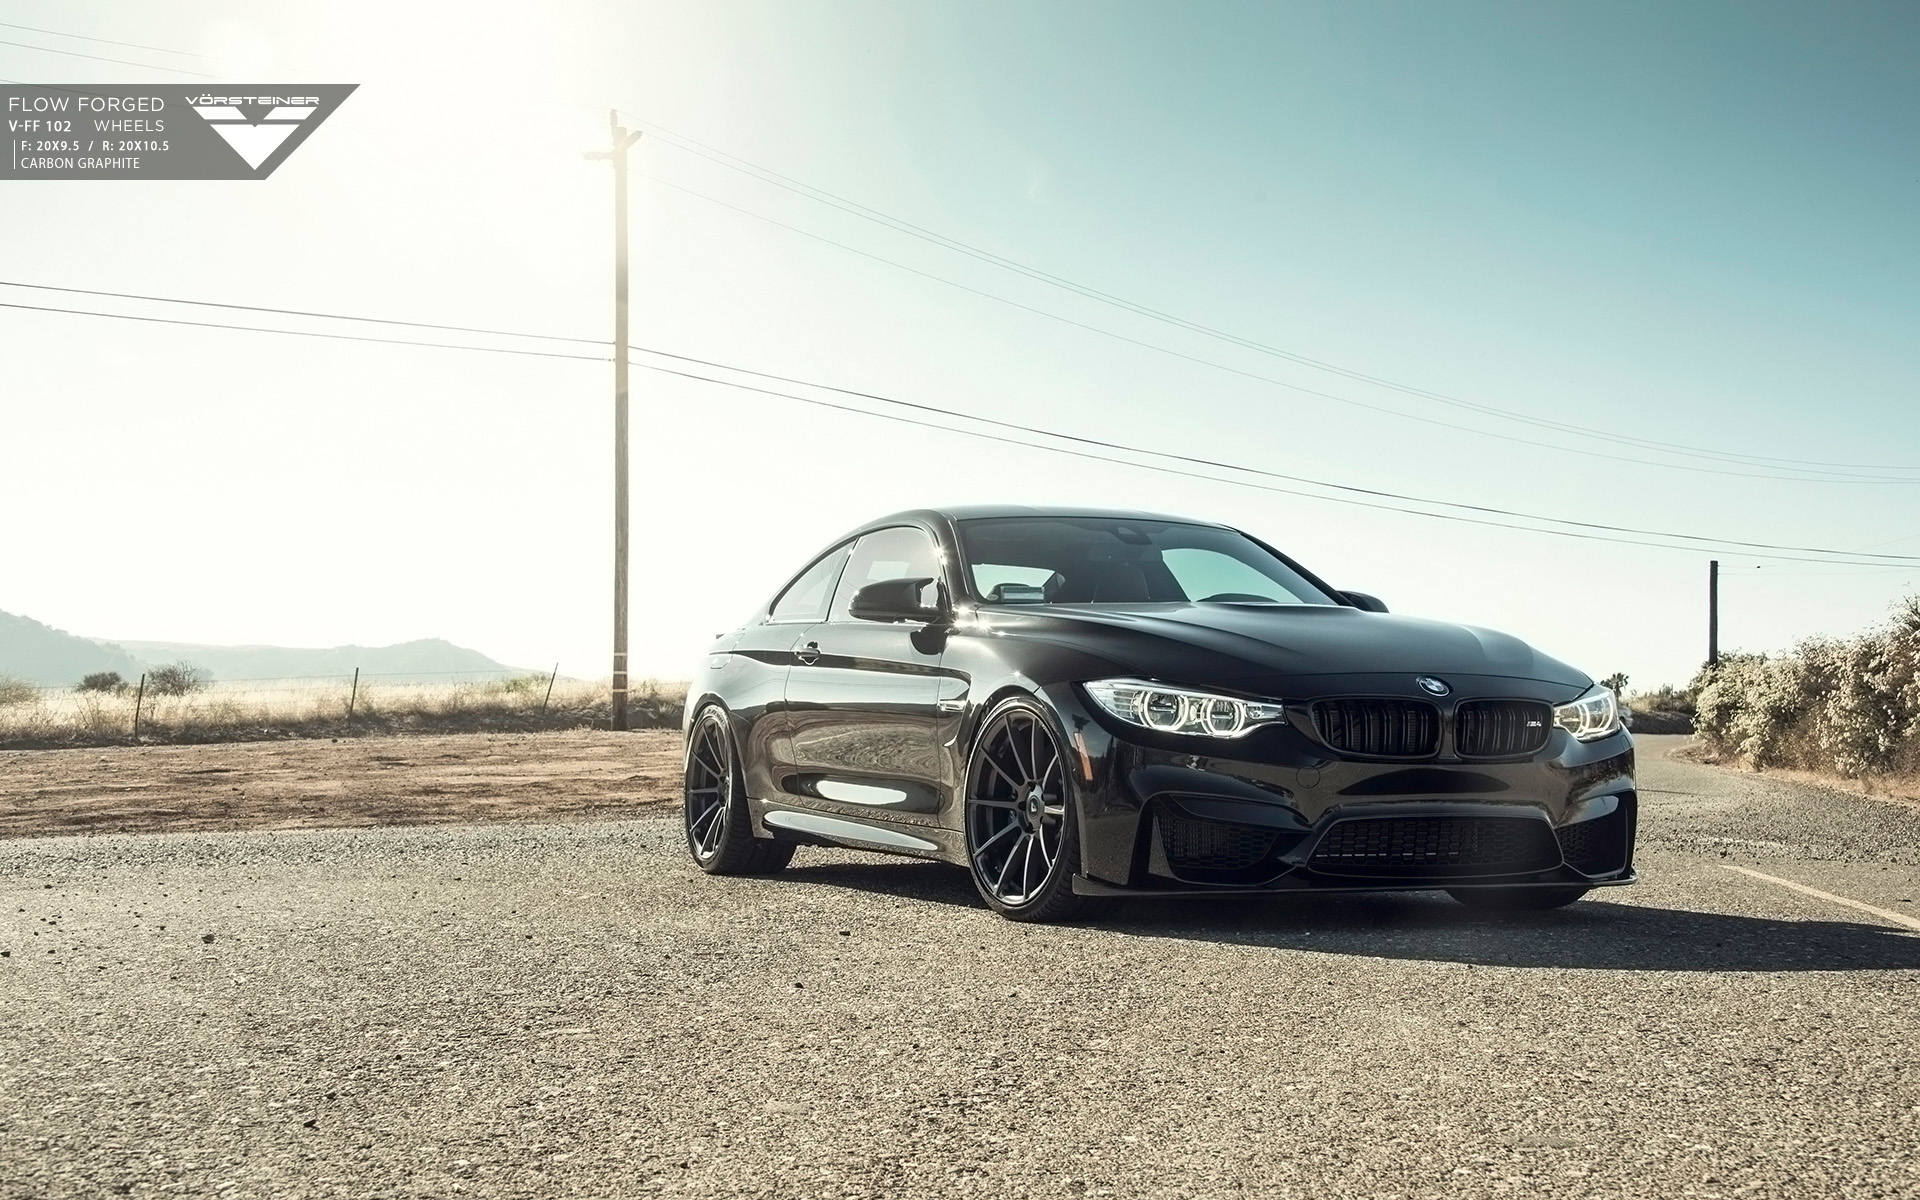 bmw x5 wallpaper iphone with 2015 Vorsteiner Bmw M4 Evo Wallpapers on Indianapacerswallpaper furthermore Funny Good Quotes additionally Benten Omniverse Aliens in addition 58054282669062745 likewise puter Wallpaper Funny.